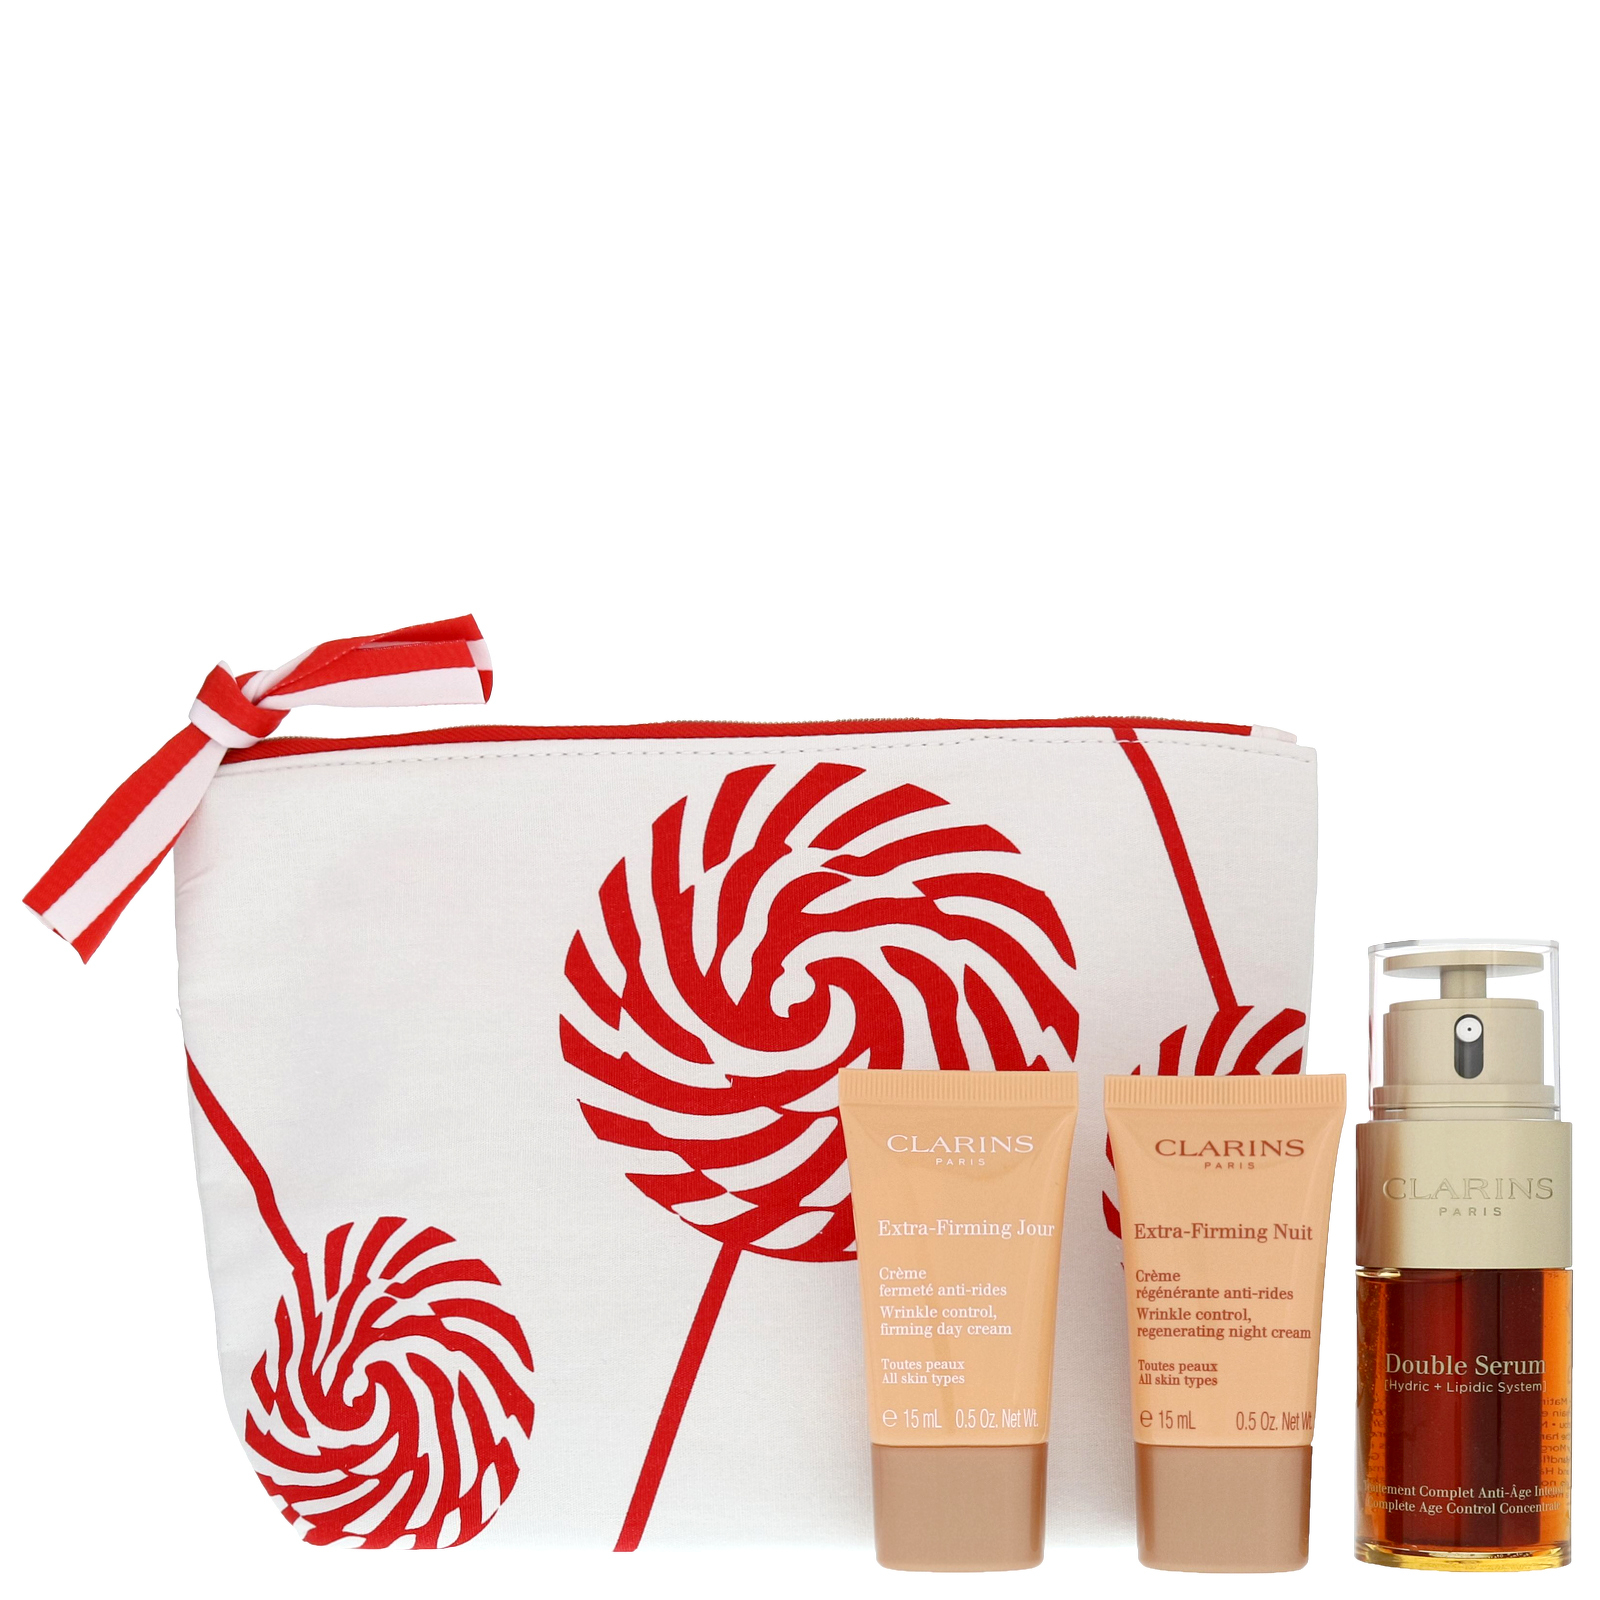 clarins gifts sets double serum 30ml extra firming day cream 15ml extra firming night cream. Black Bedroom Furniture Sets. Home Design Ideas